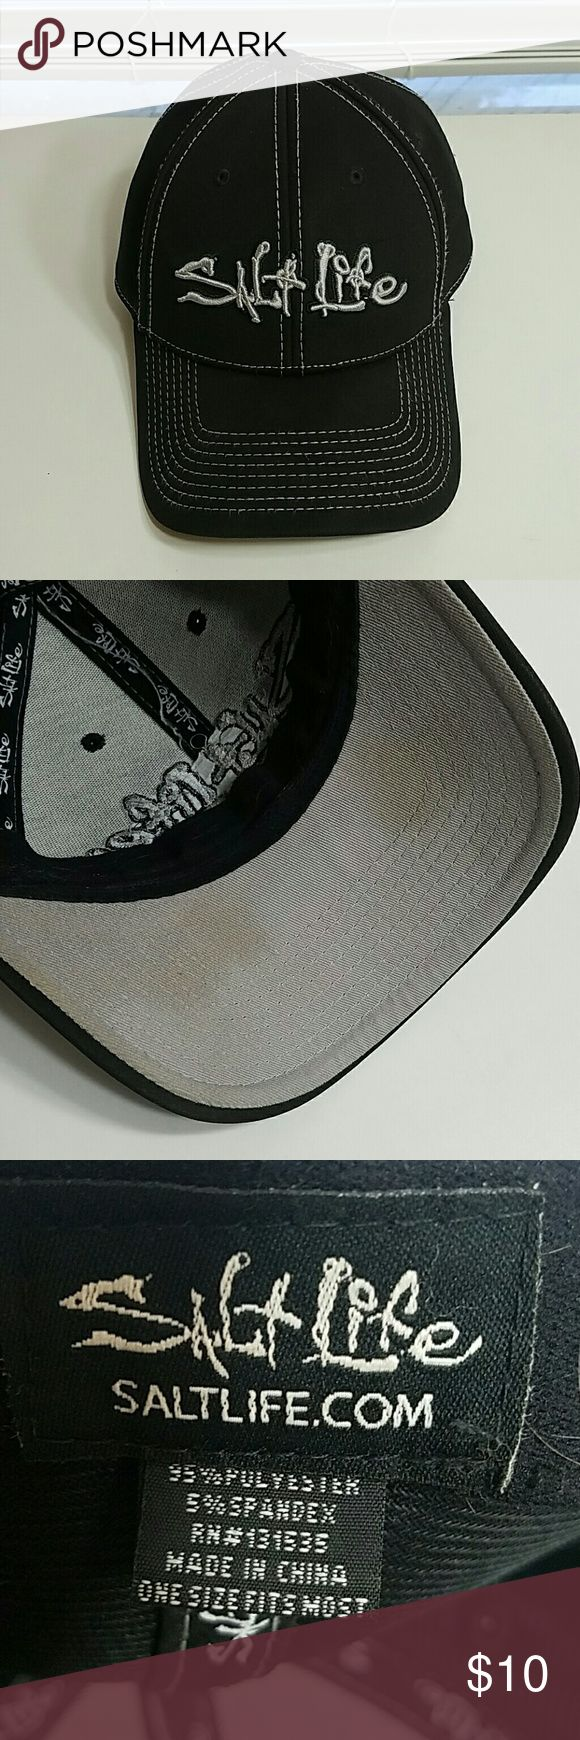 Men's Salt Life Hat OSFM. Worn a few times. Some marks on inside of Bill of hat as seen in 3rd pic. Otherwise great condition. Salt Life Accessories Hats